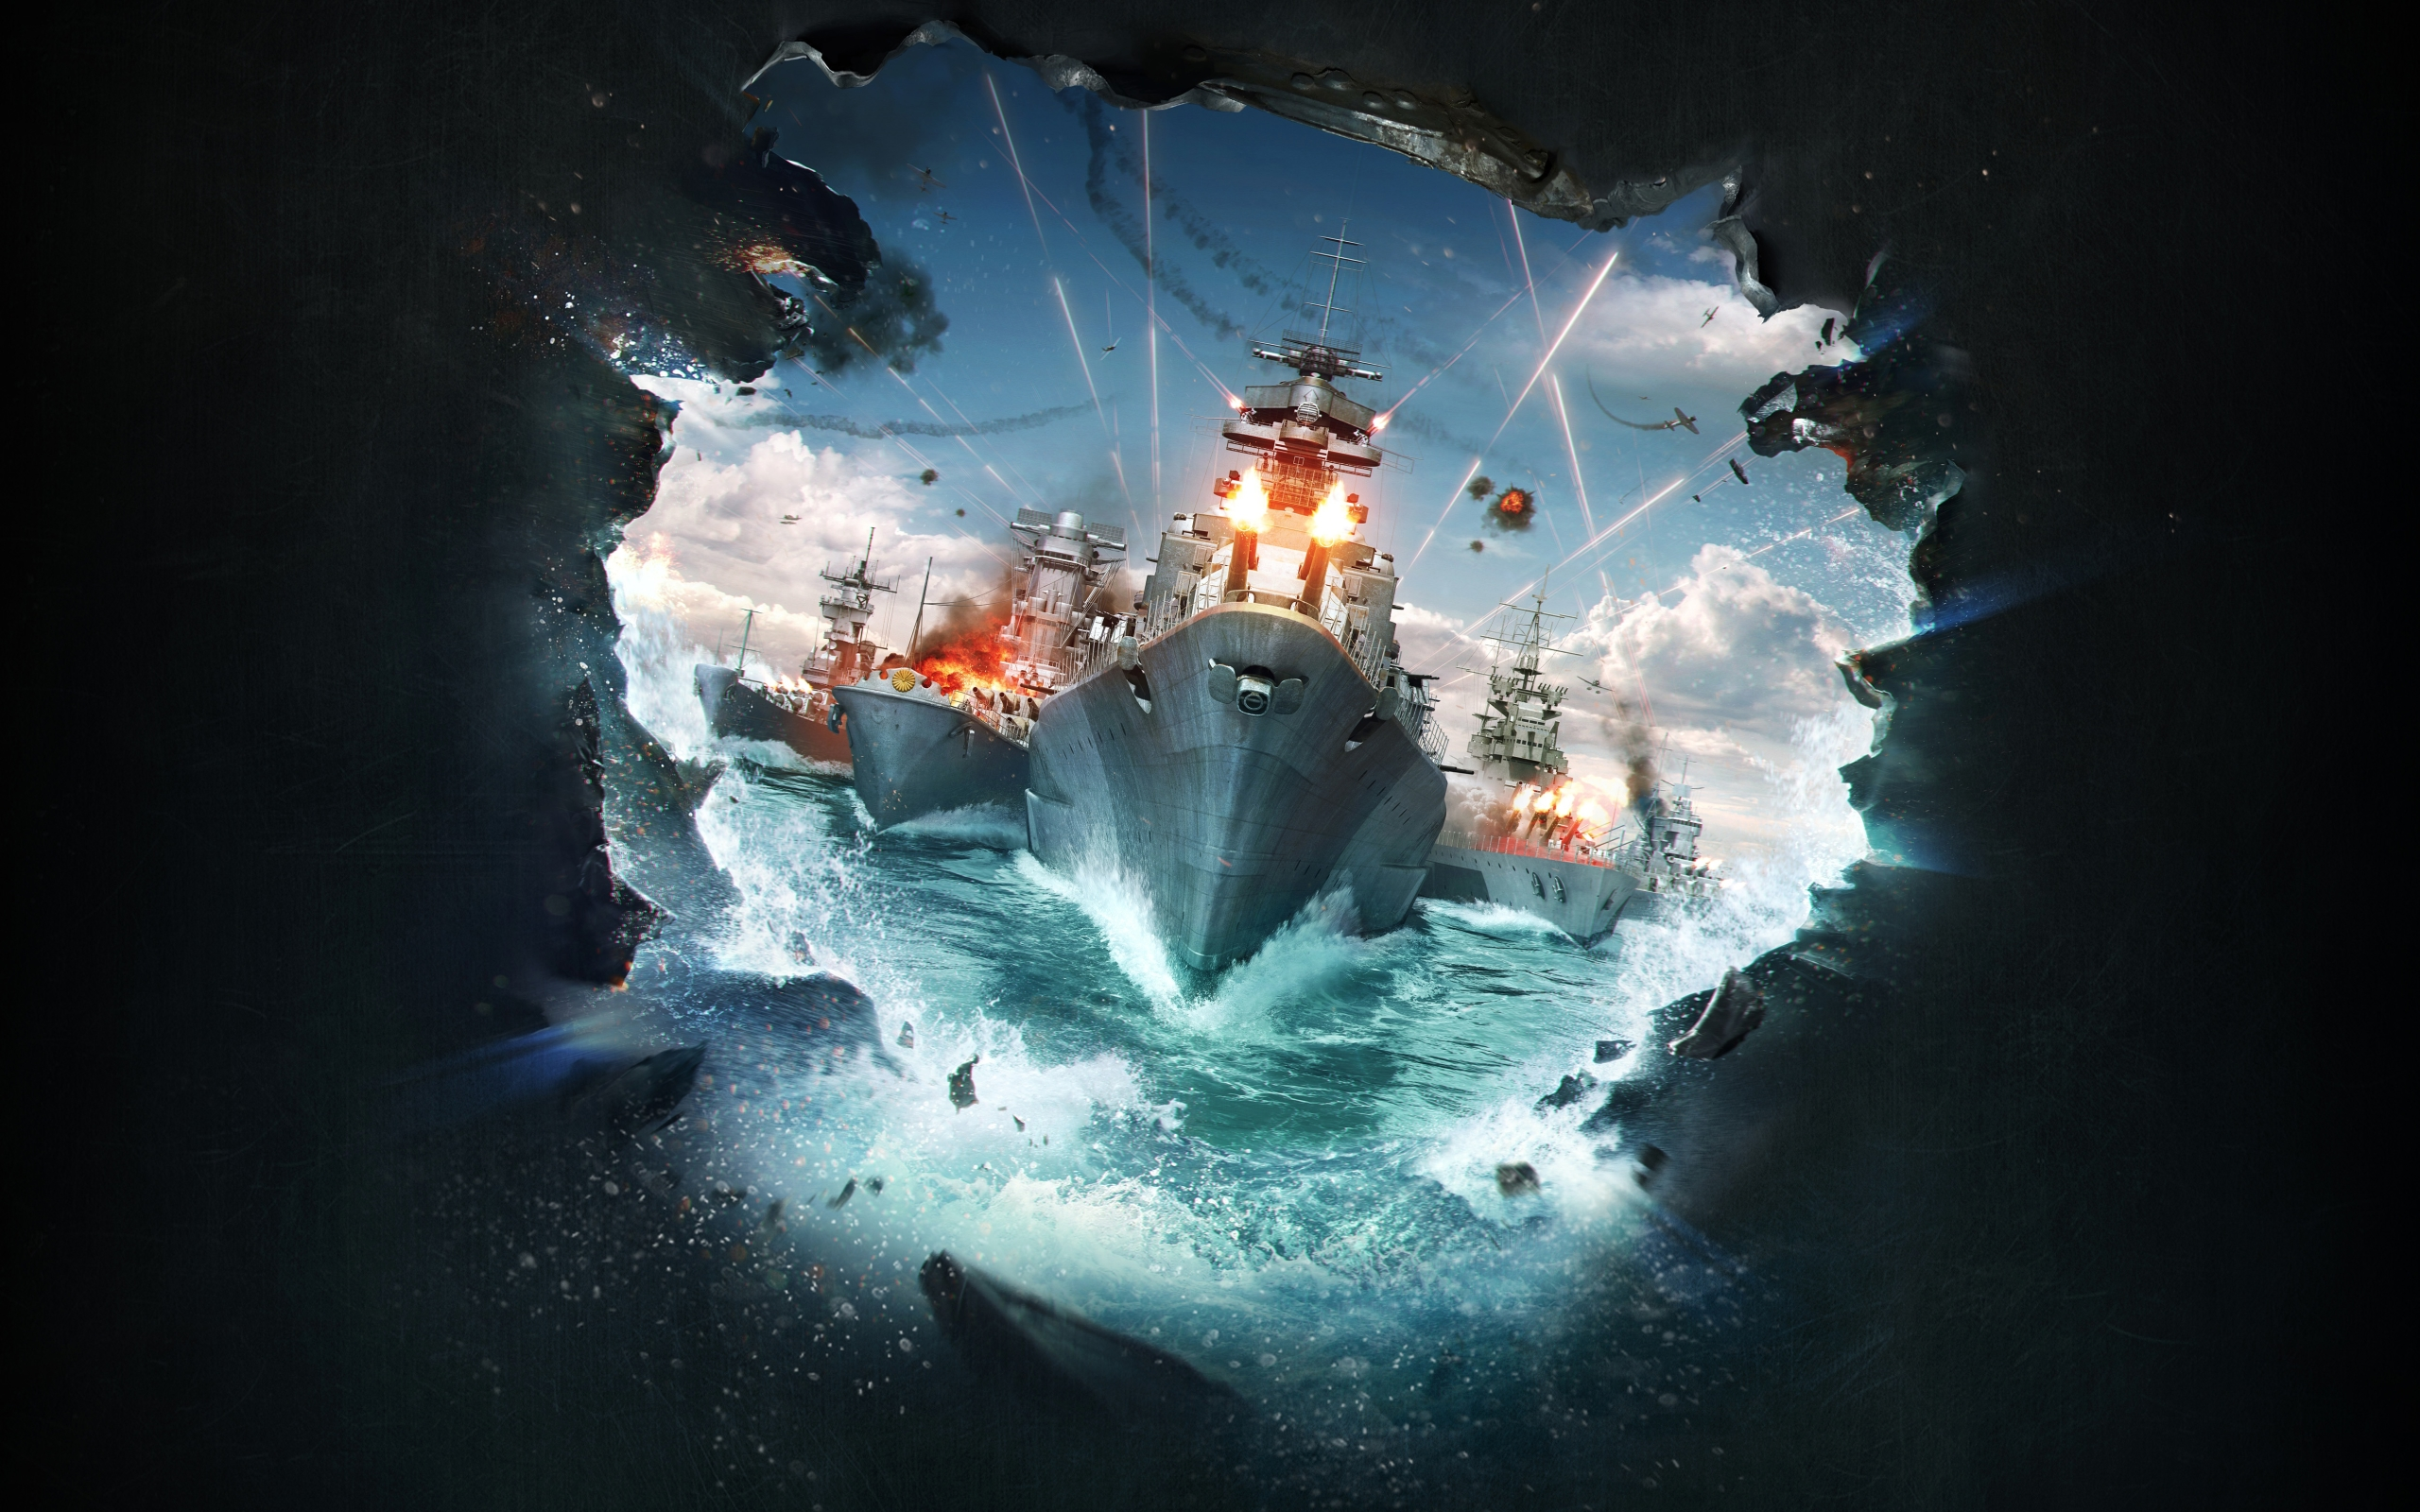 Wallpaper Of Warship World Of Warships Video Game Wargaming